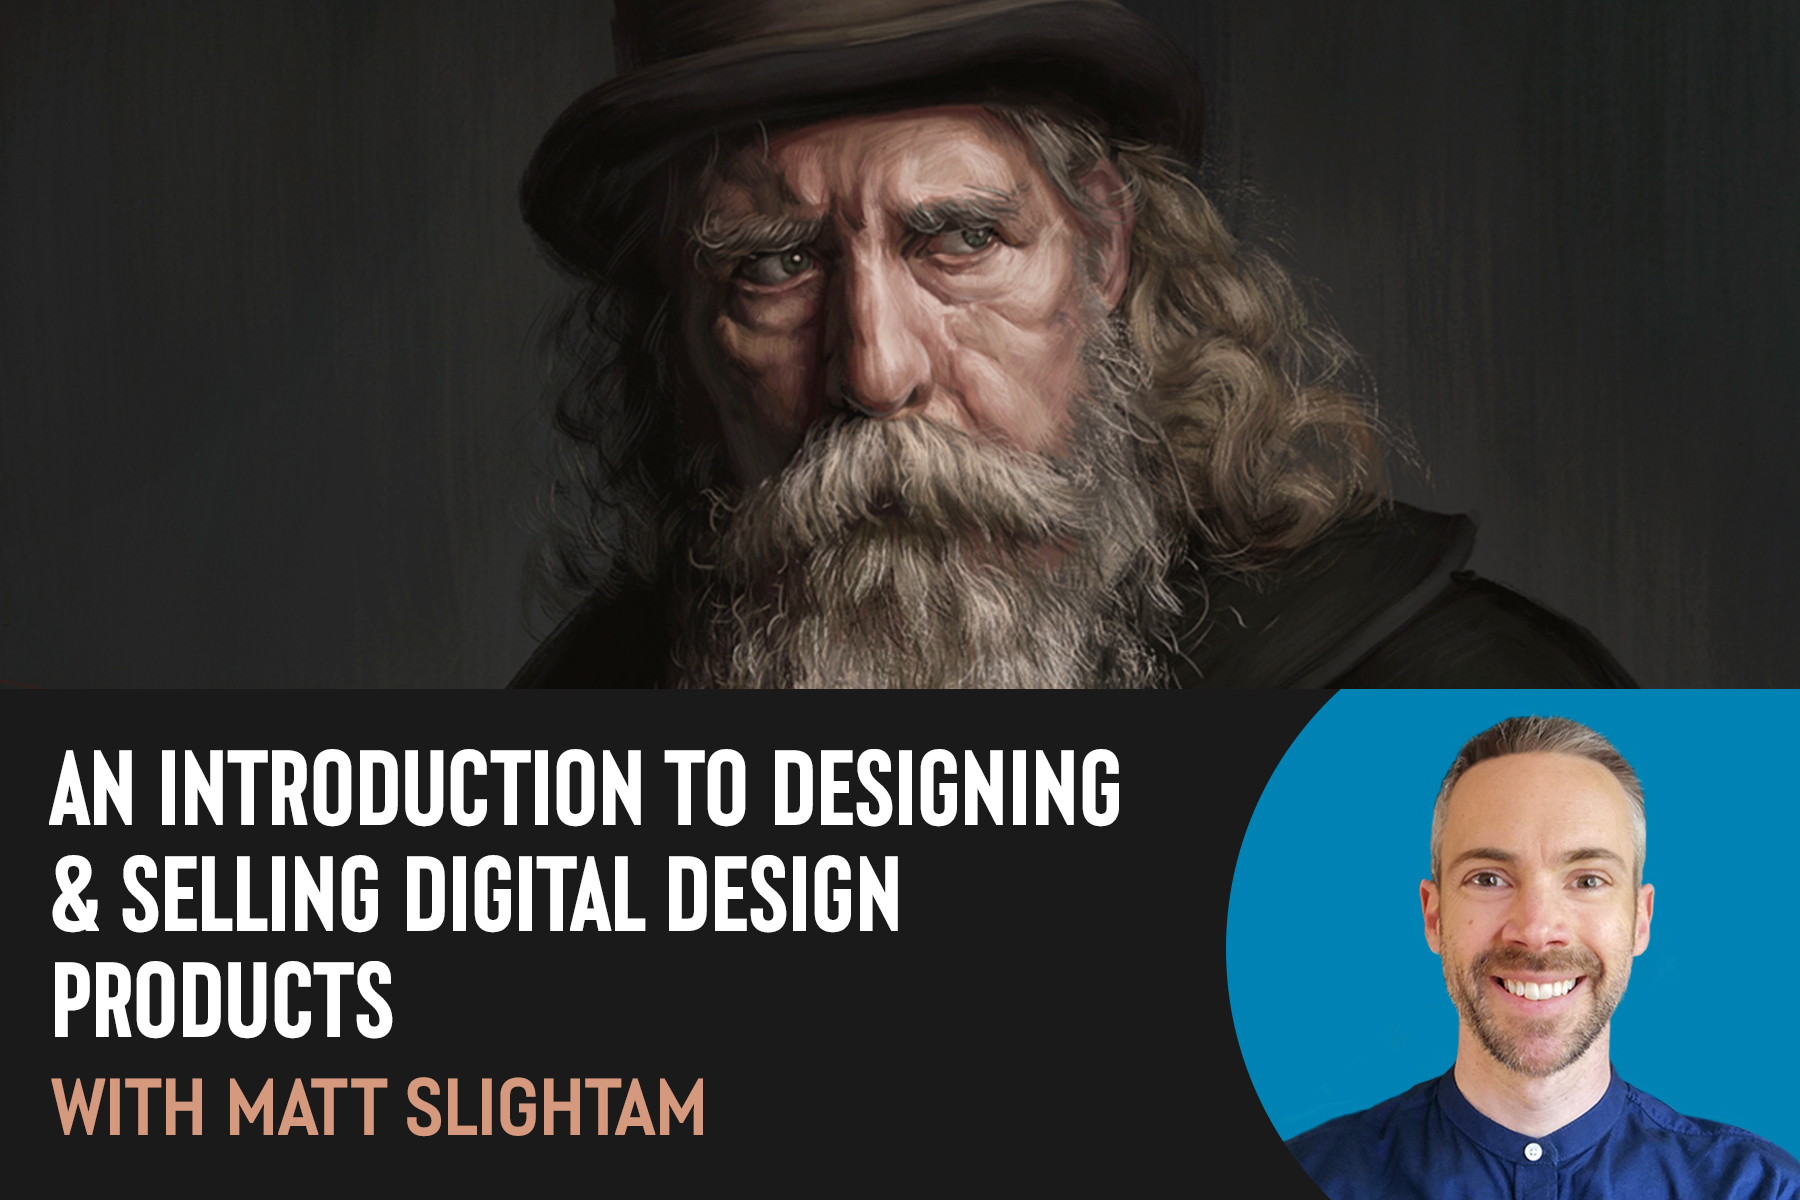 An Introduction to Designing & Selling Digital Design Products